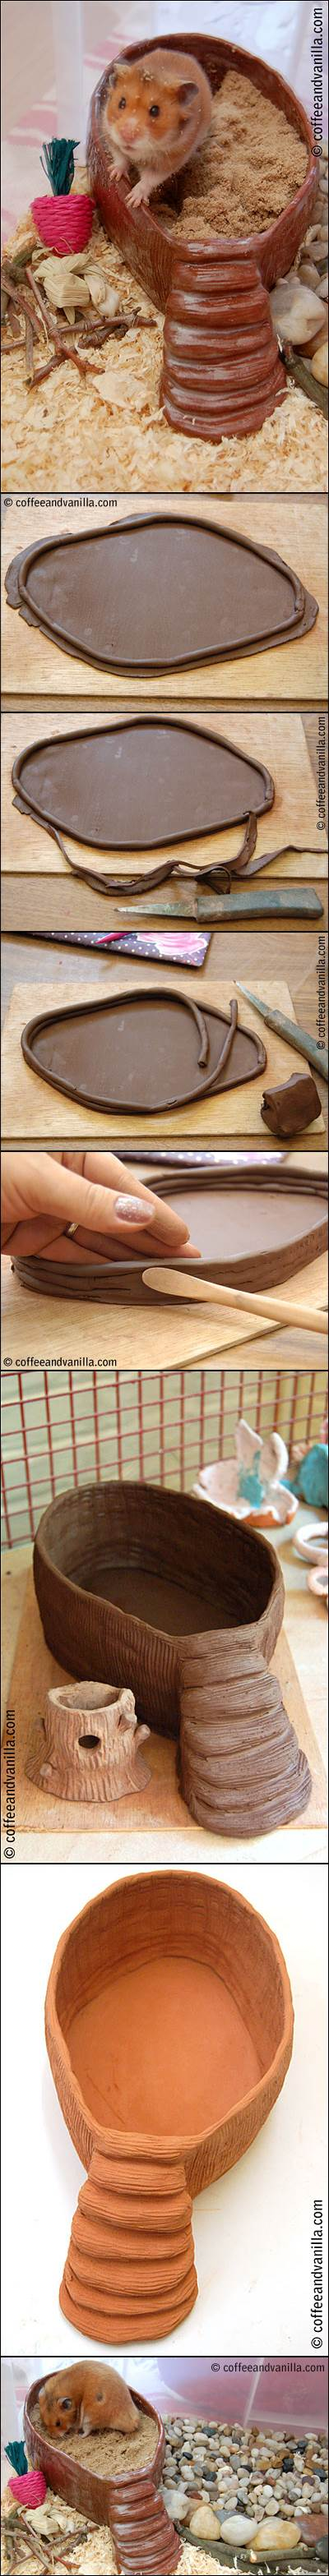 DIY Terracotta Clay Sand Bathtub for Hamsters 2